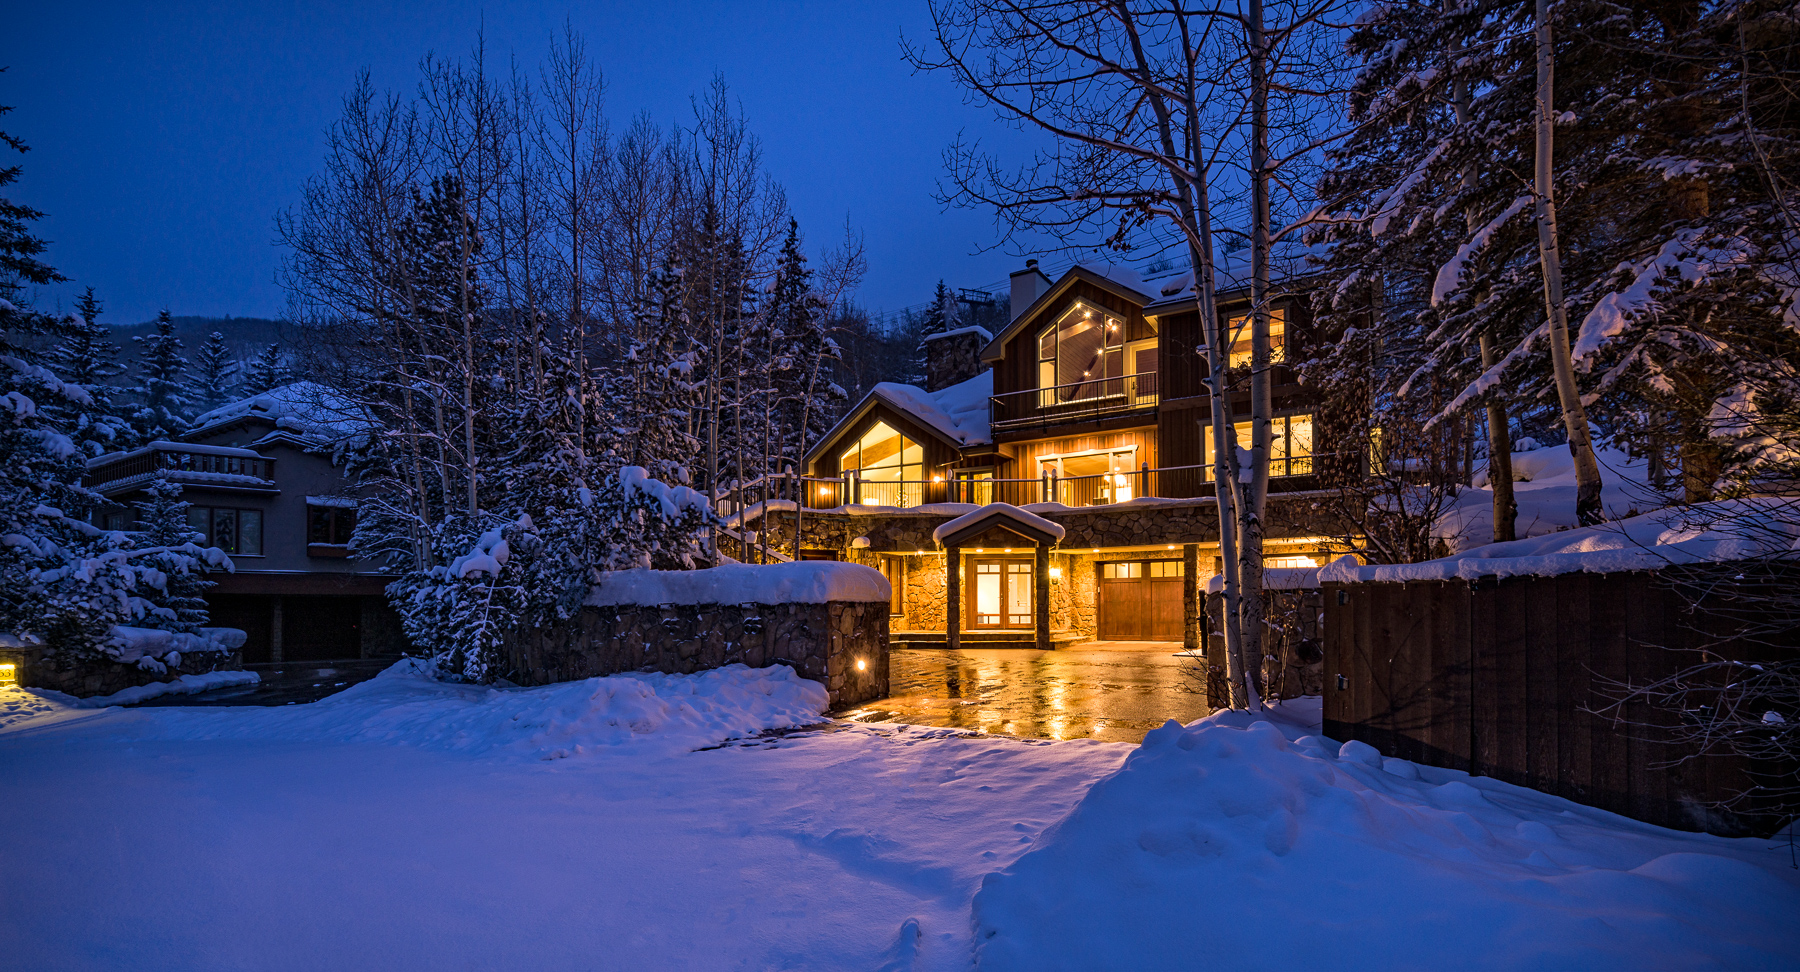 Single Family Home for Active at Ski in/Ski out Residence in Beaver Creek 65 Elk Track Ct Beaver Creek, Colorado 81620 United States